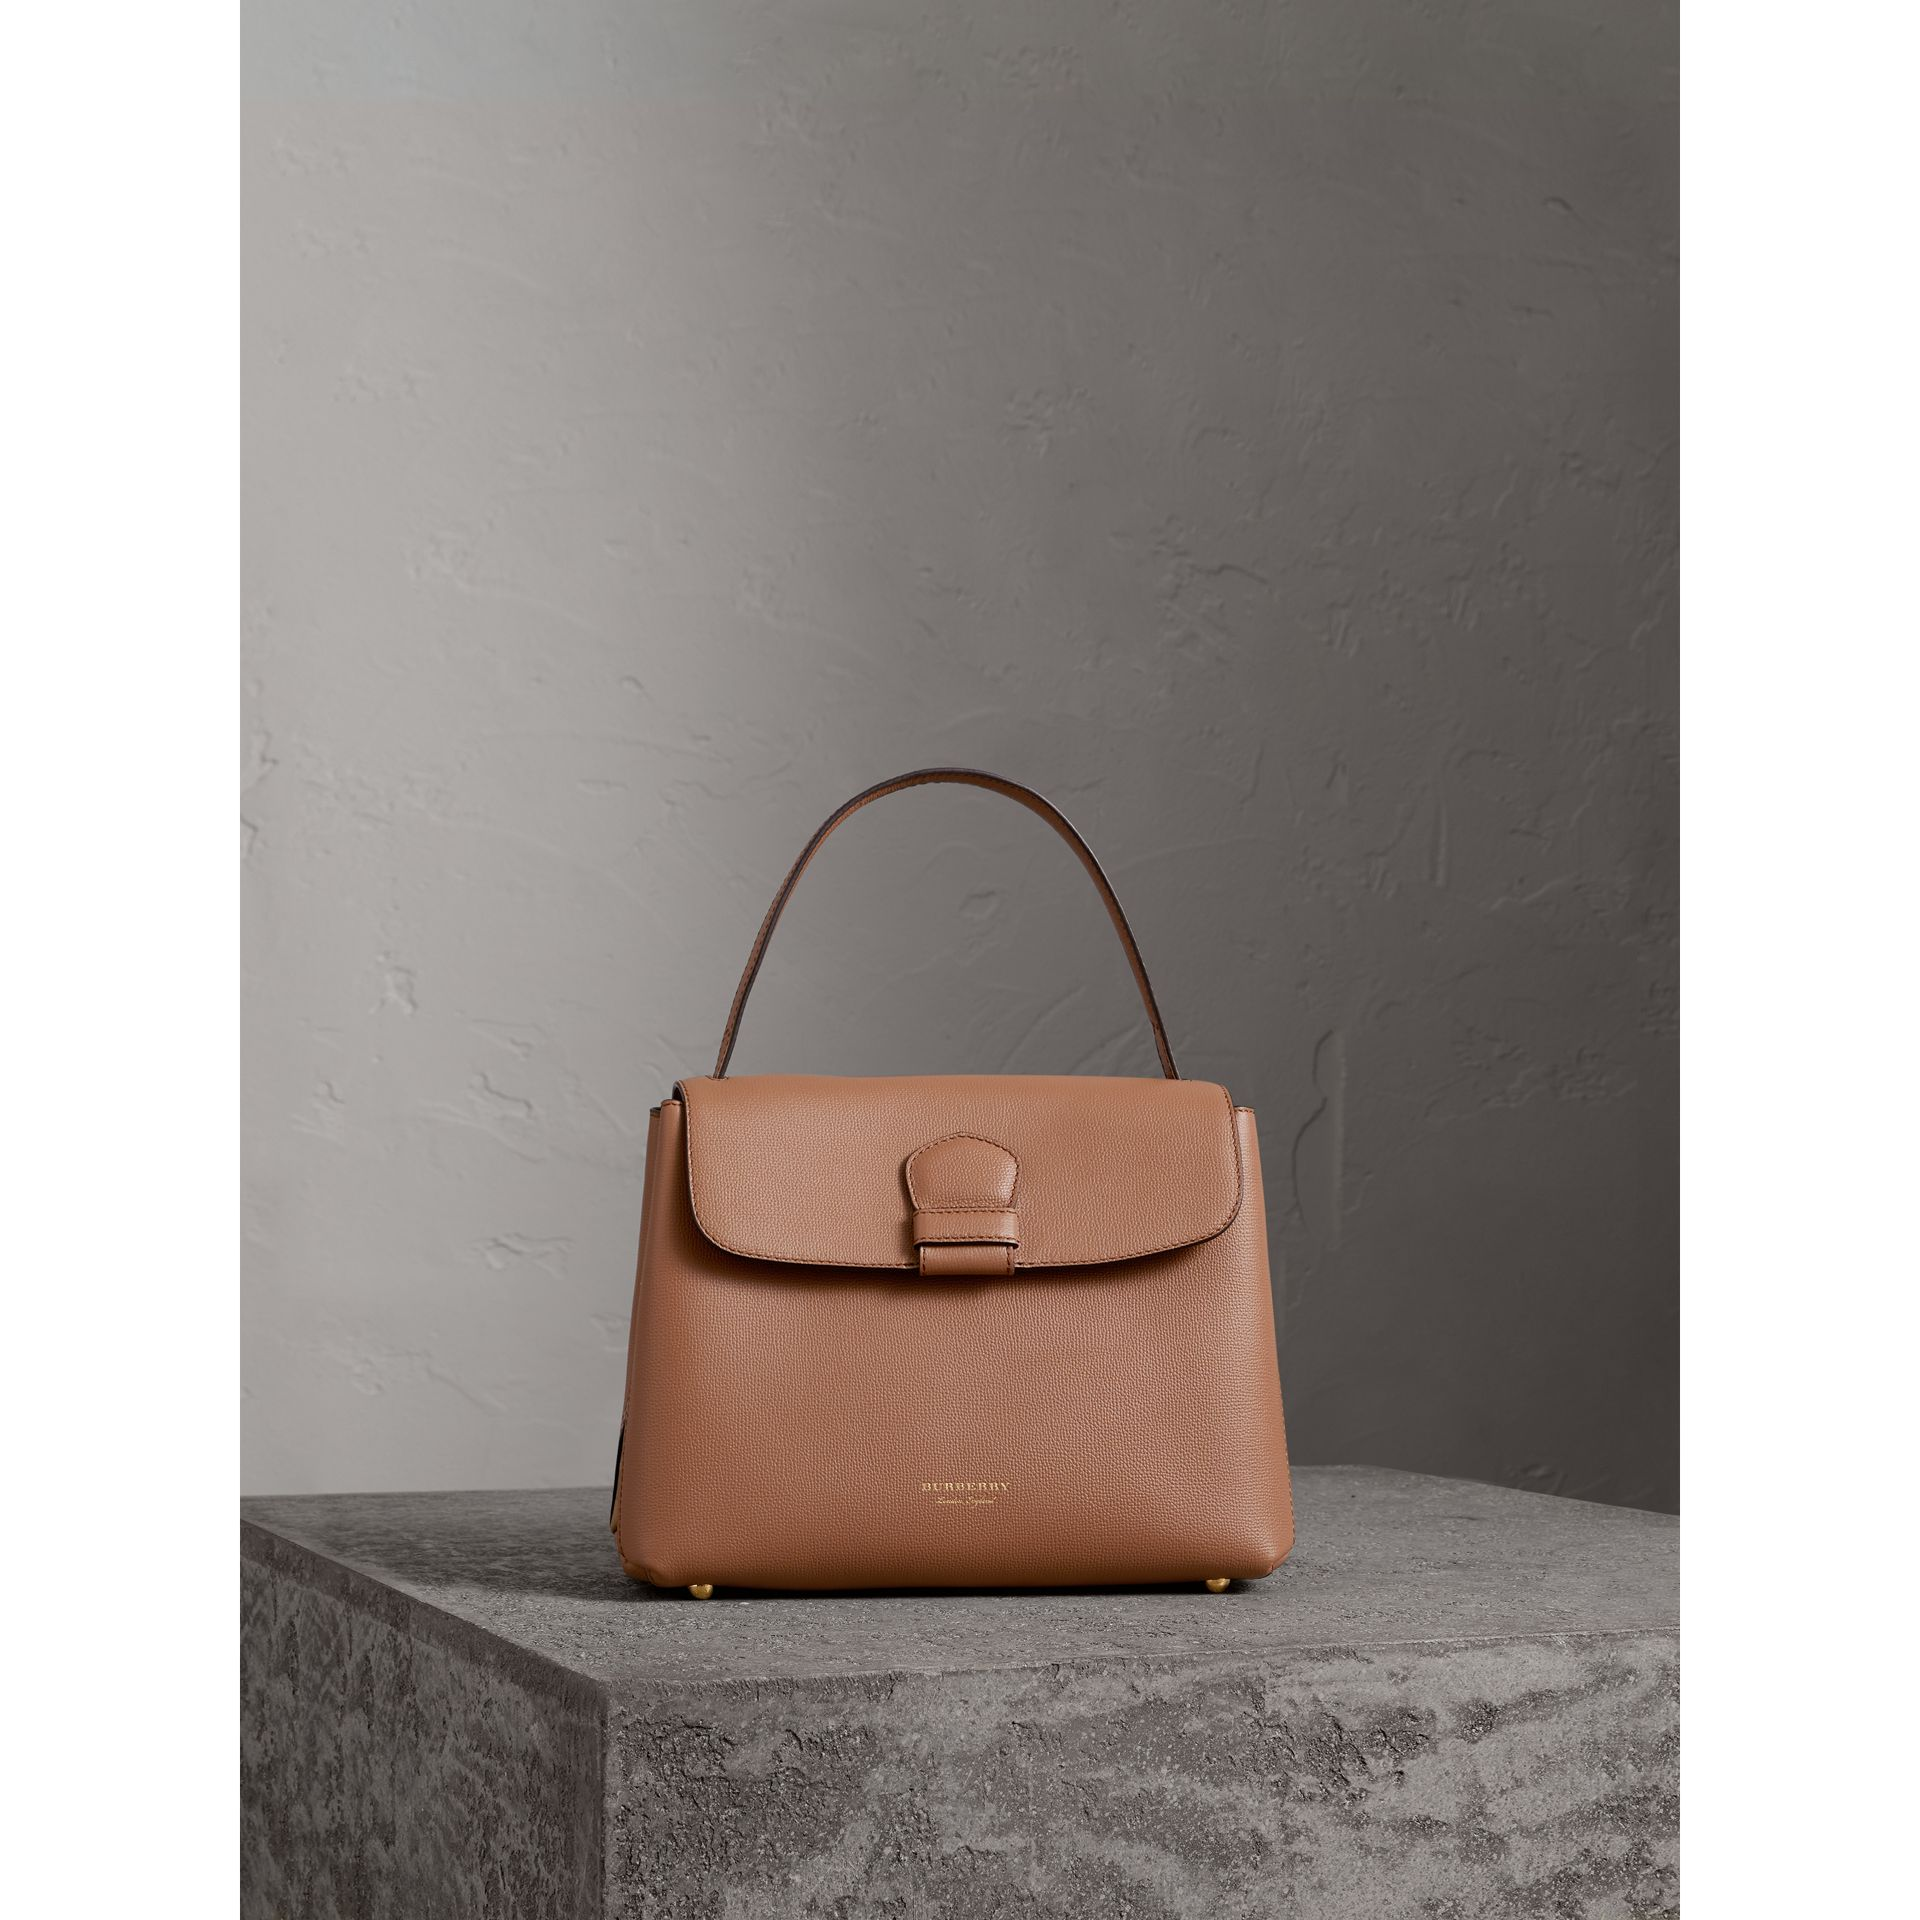 Small Grainy Leather and House Check Tote Bag in Dark Sand - Women | Burberry Singapore - gallery image 4